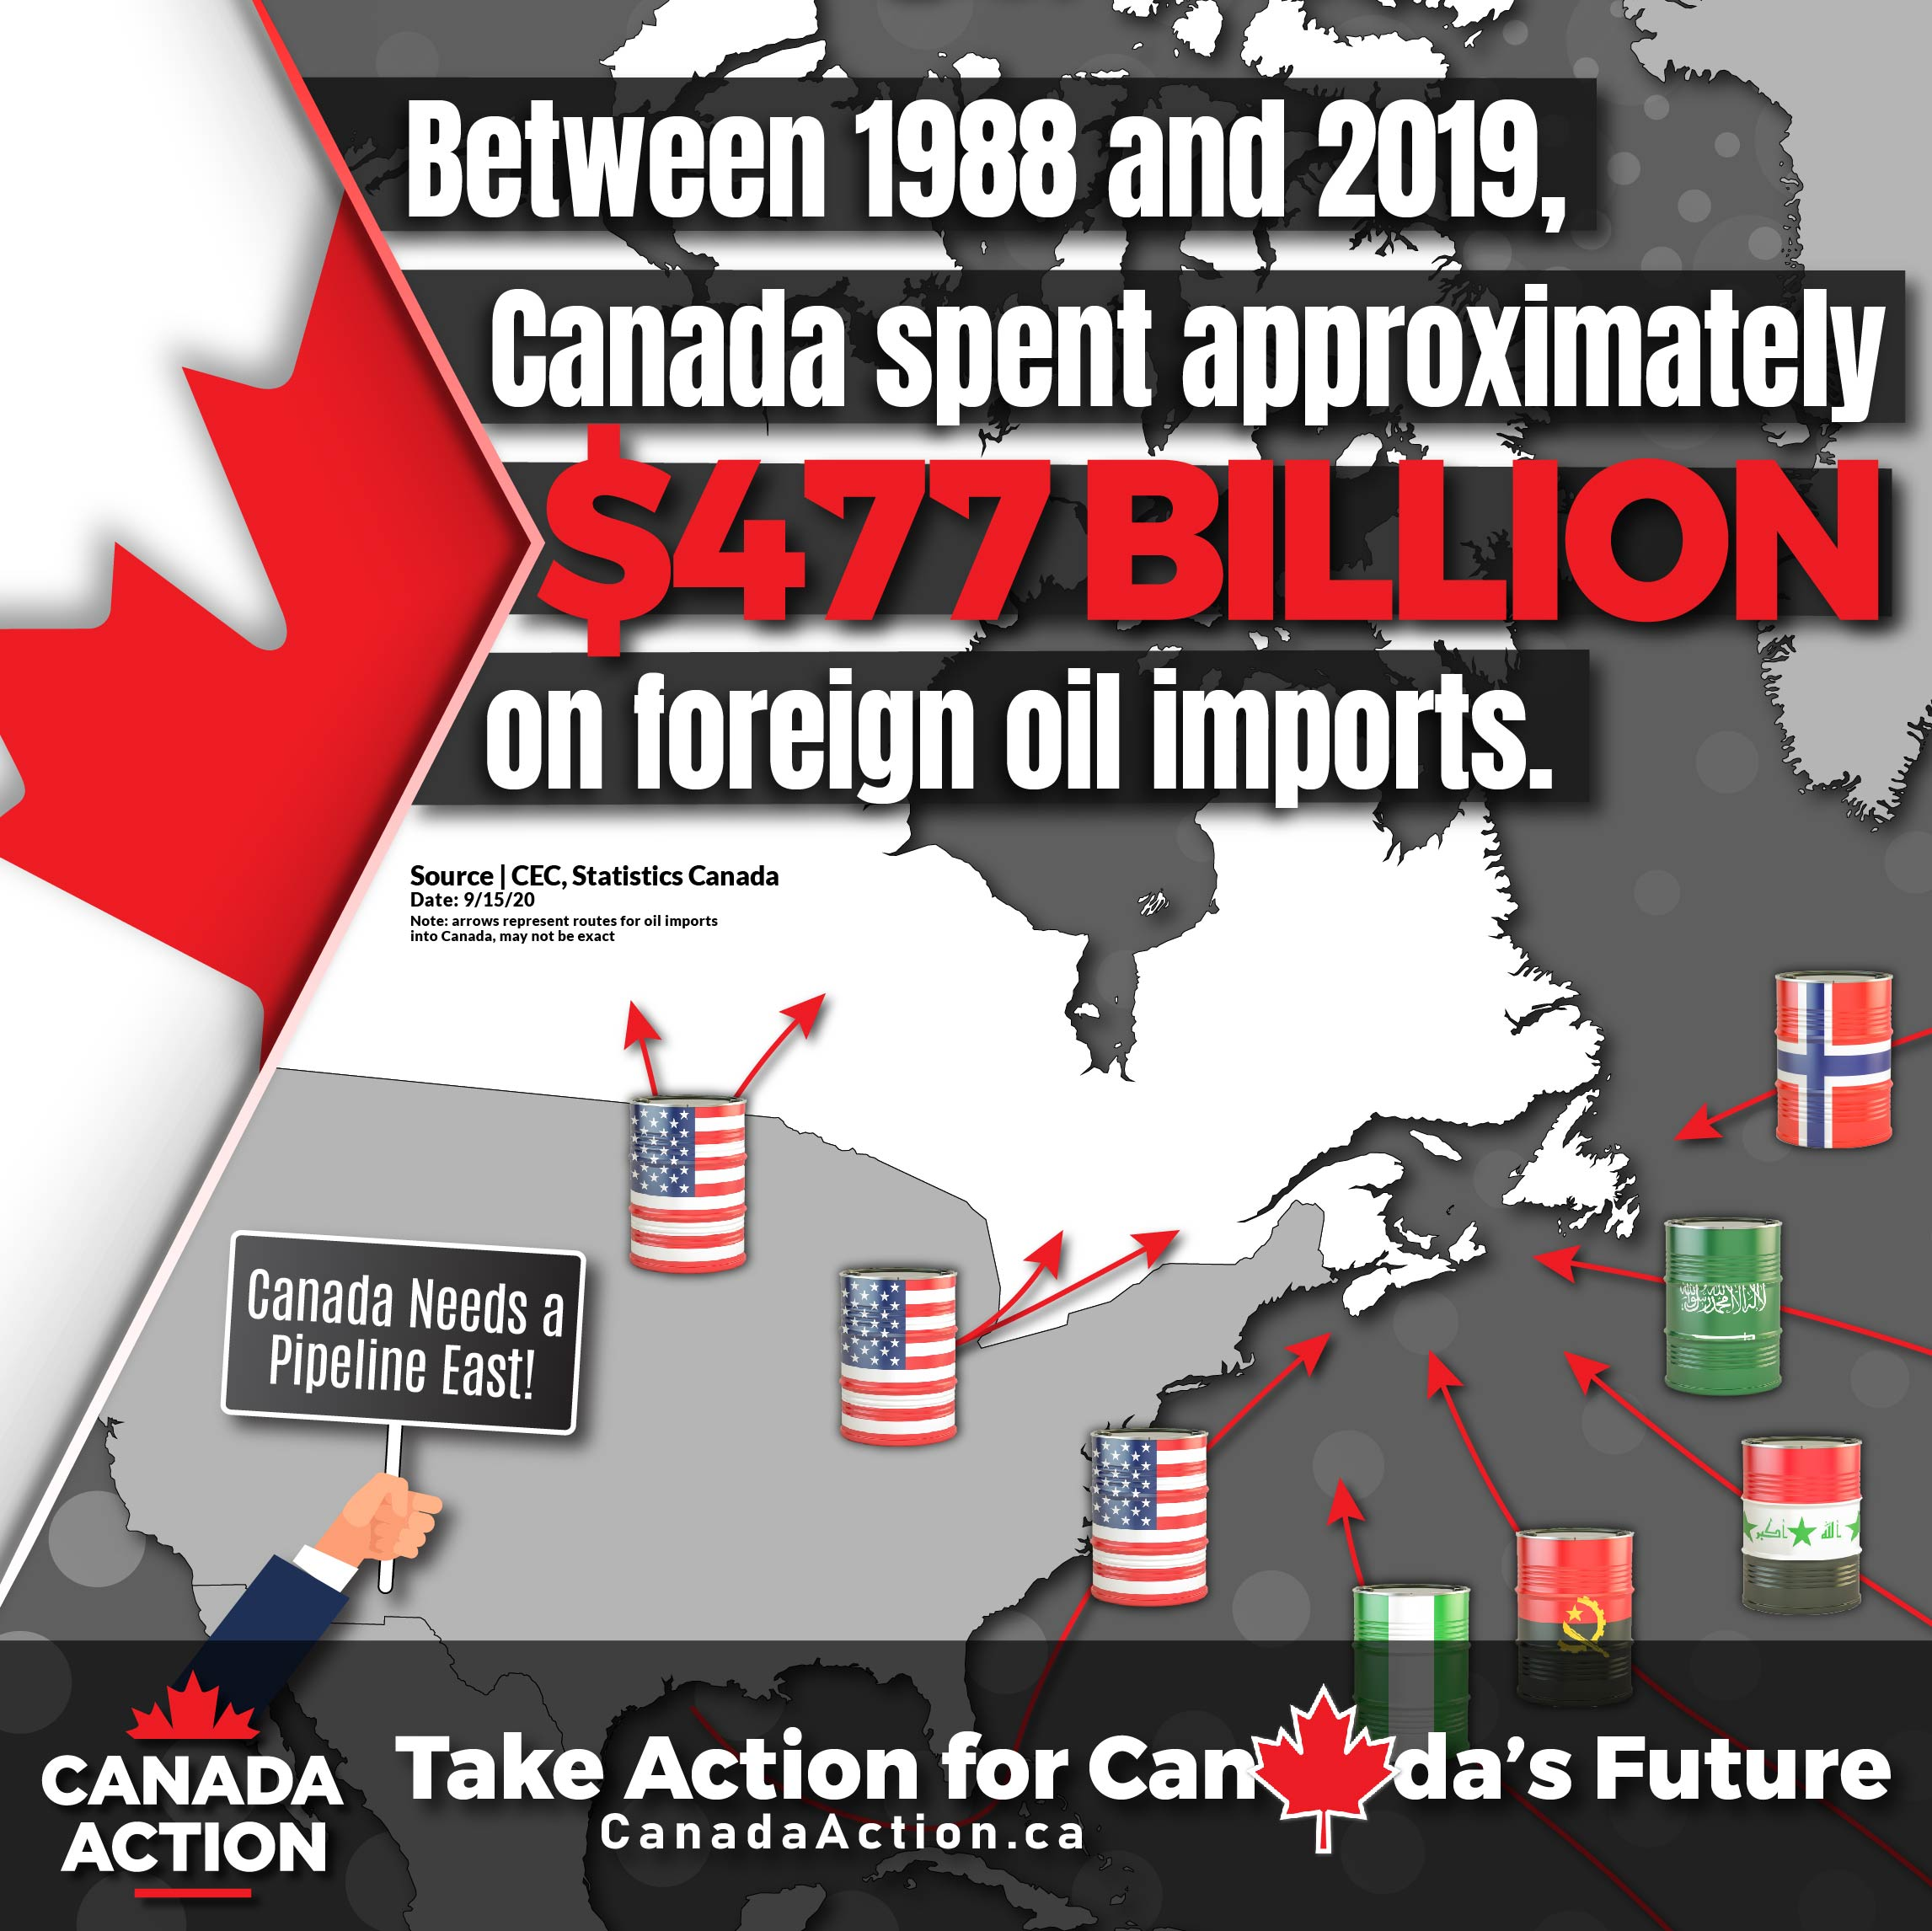 Canadian Foreign Oil Imports 1988 - 2019-01